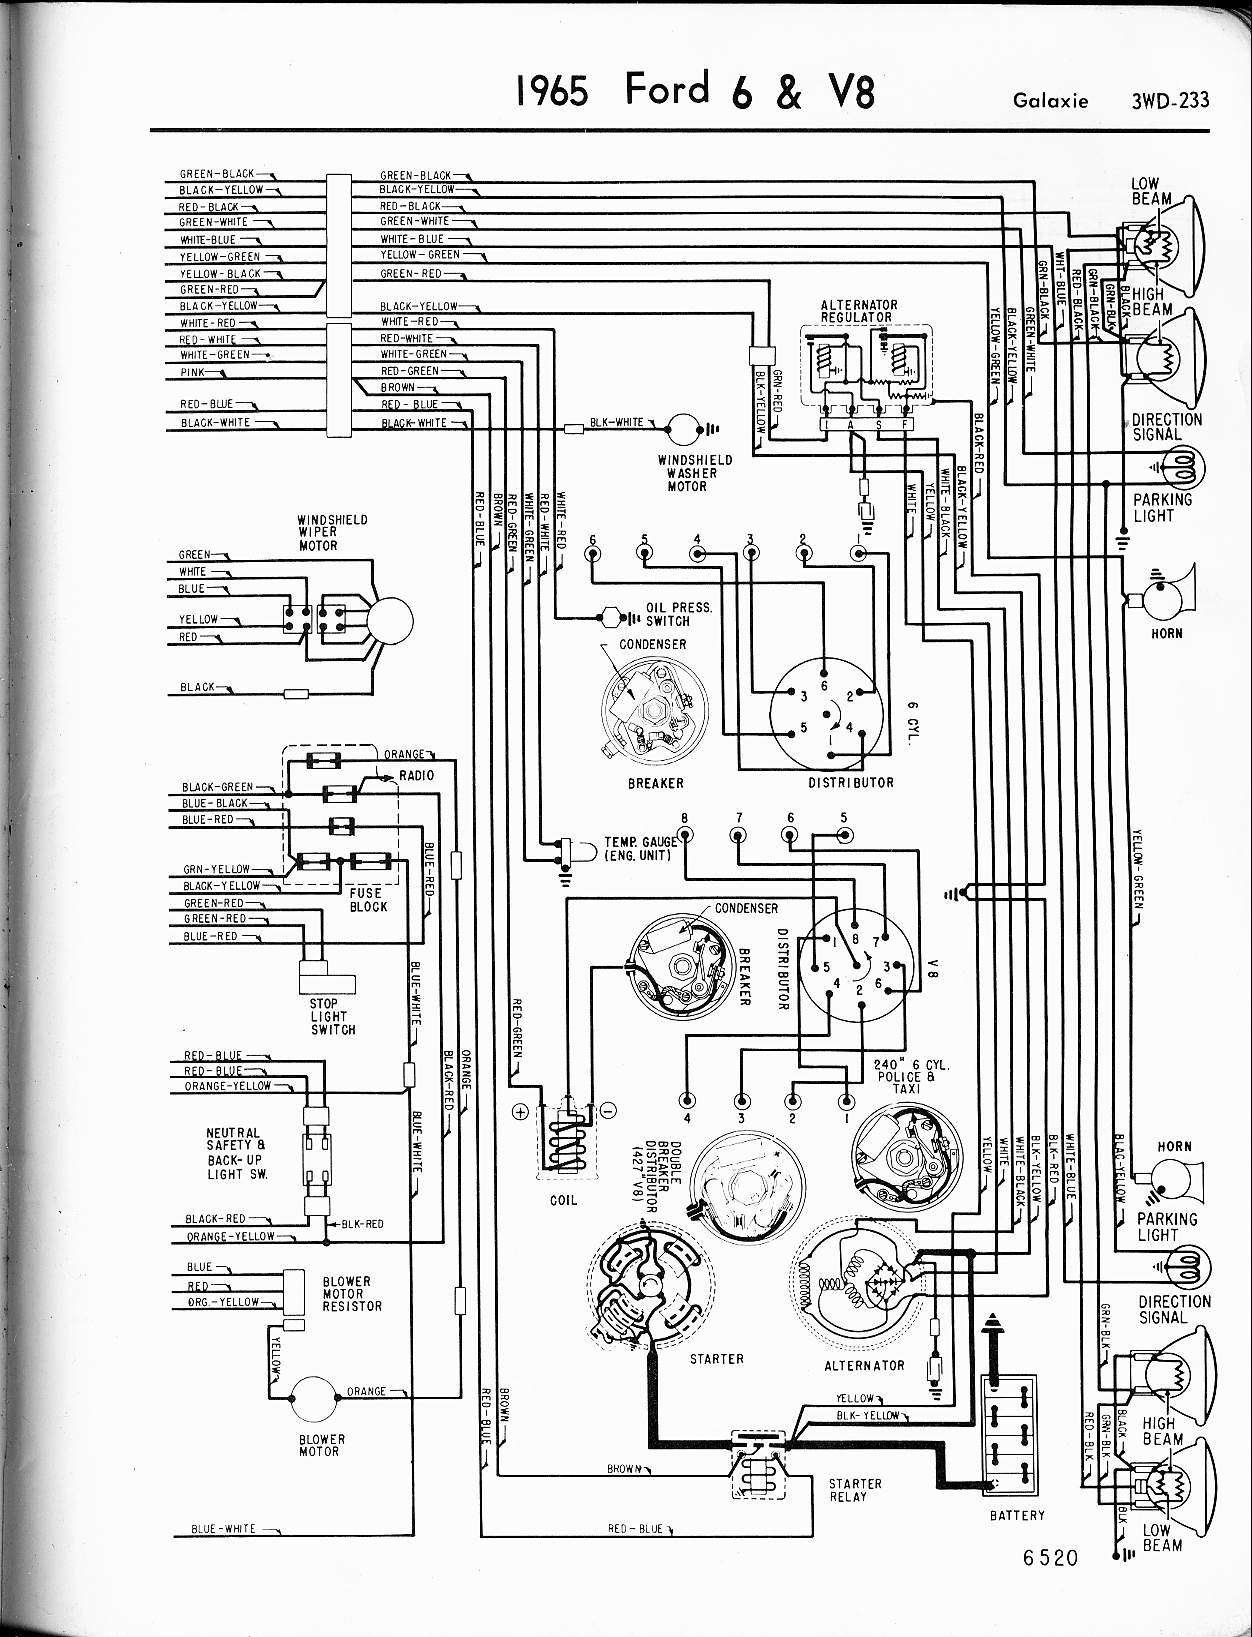 78 ranchero 500 wiring diagram wiring diagram autovehicle wiring schematics 1972 ford ranchero likewise 1964 ford falcon1964 fairlane wiring diagram manual wiring